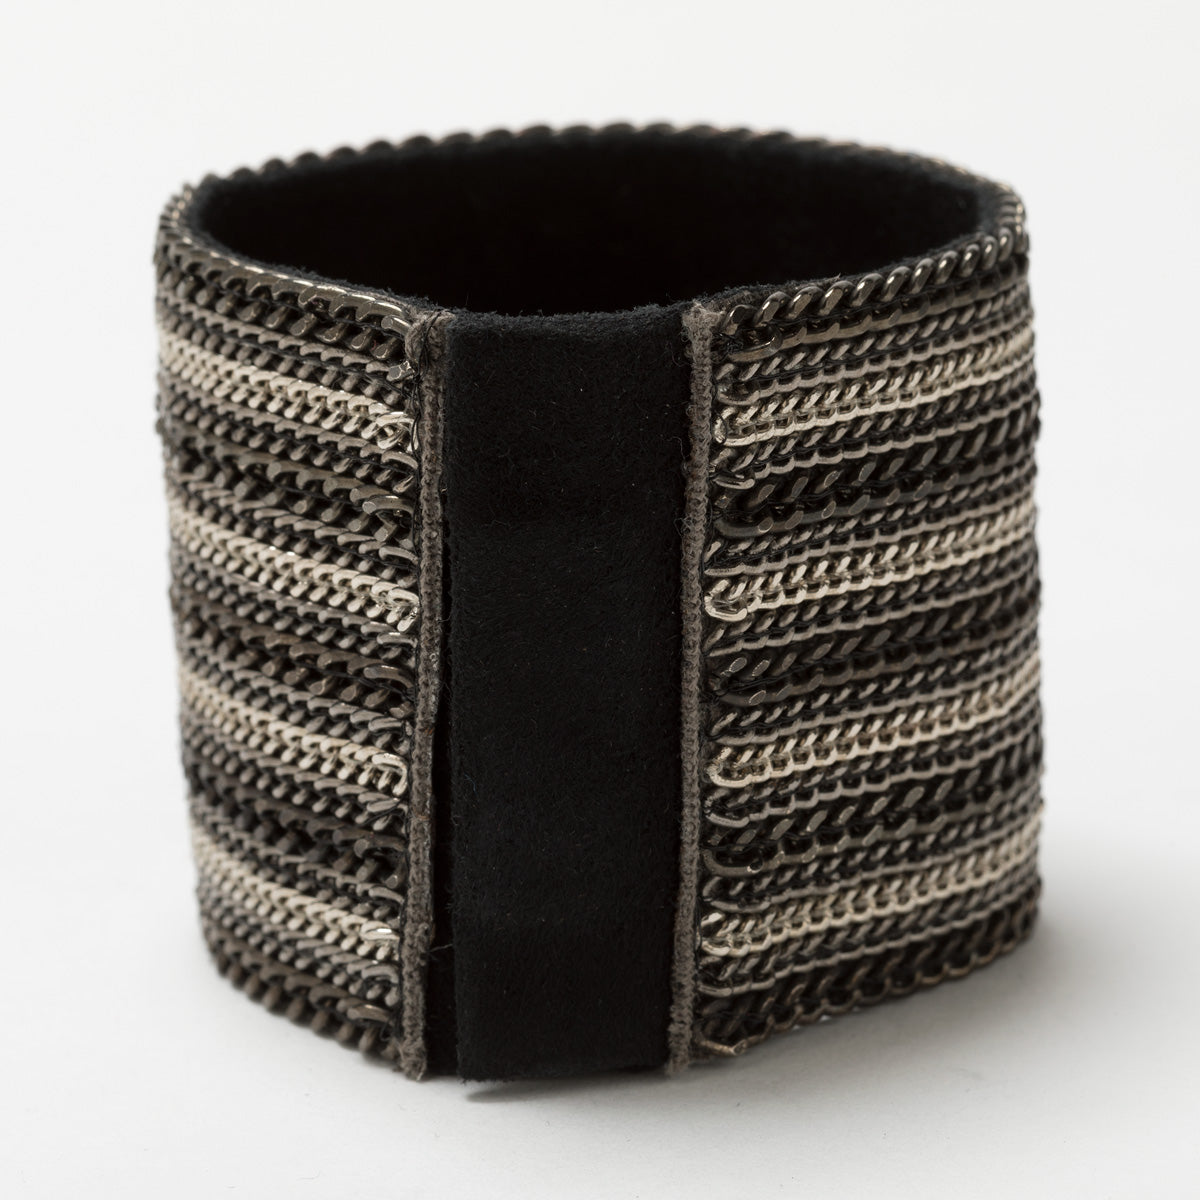 Lori Weitzner Zorya cuff bracelet with chain, suede backing and magnetic closure